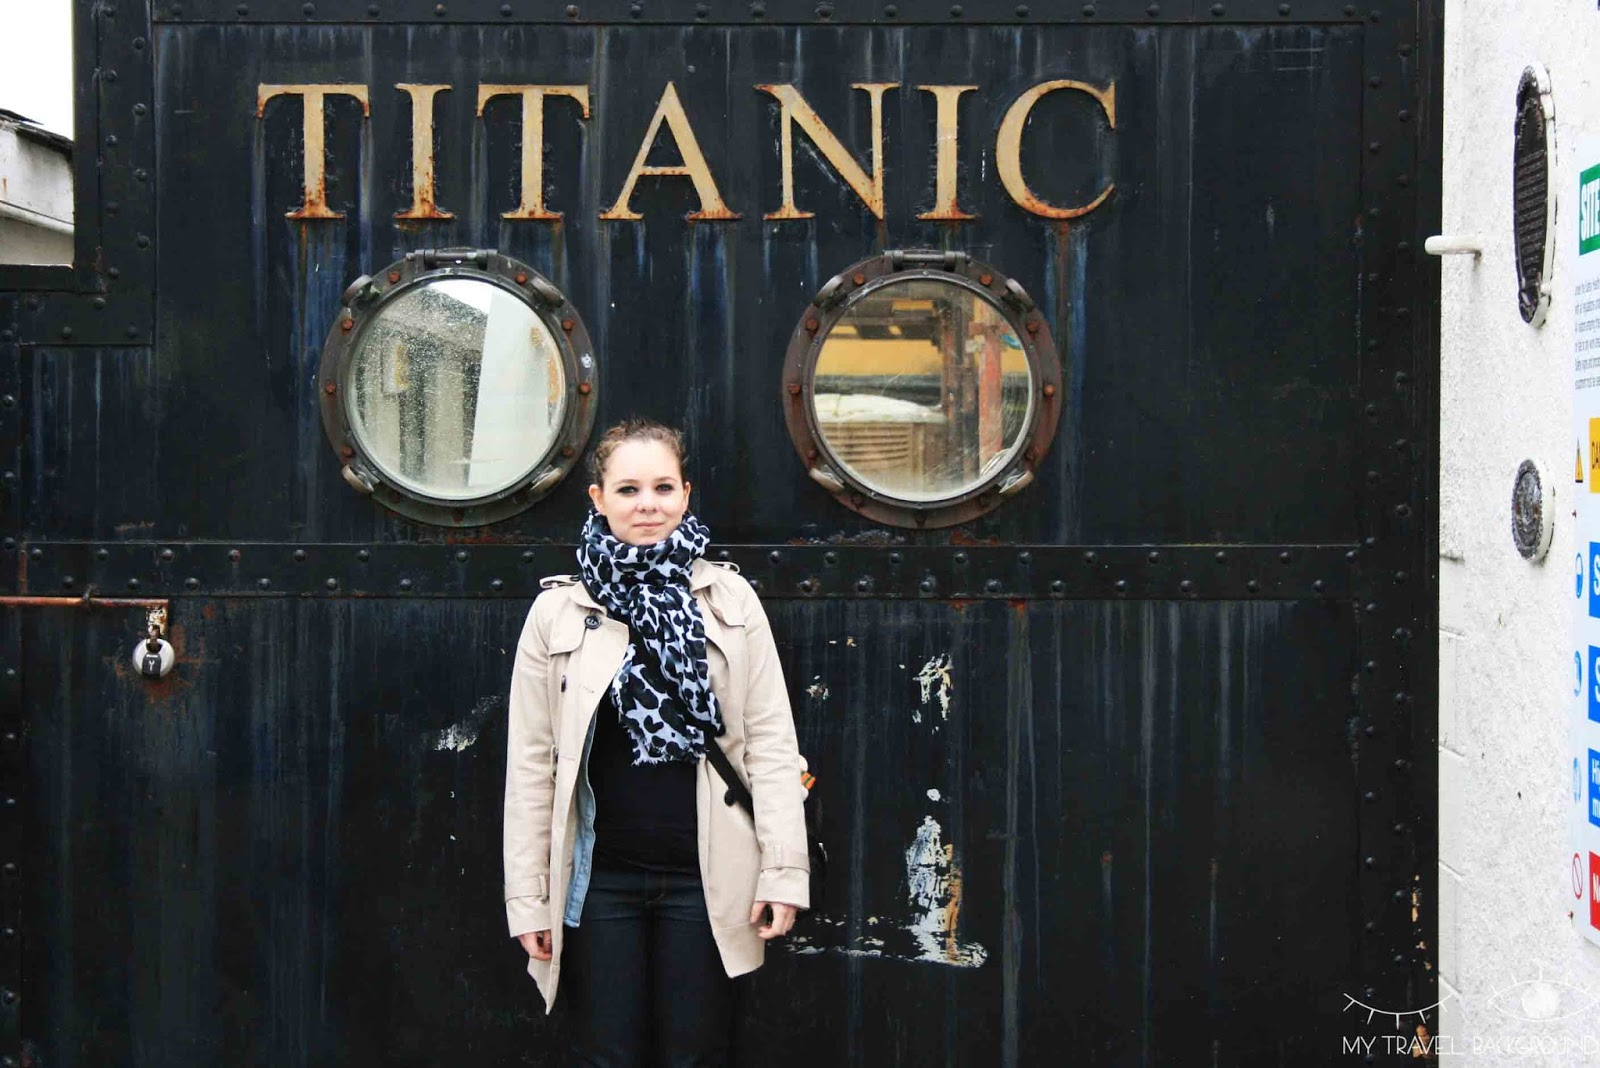 My Travel Background : un jour à Belfast, en Irlande du Nord - Le Titanic